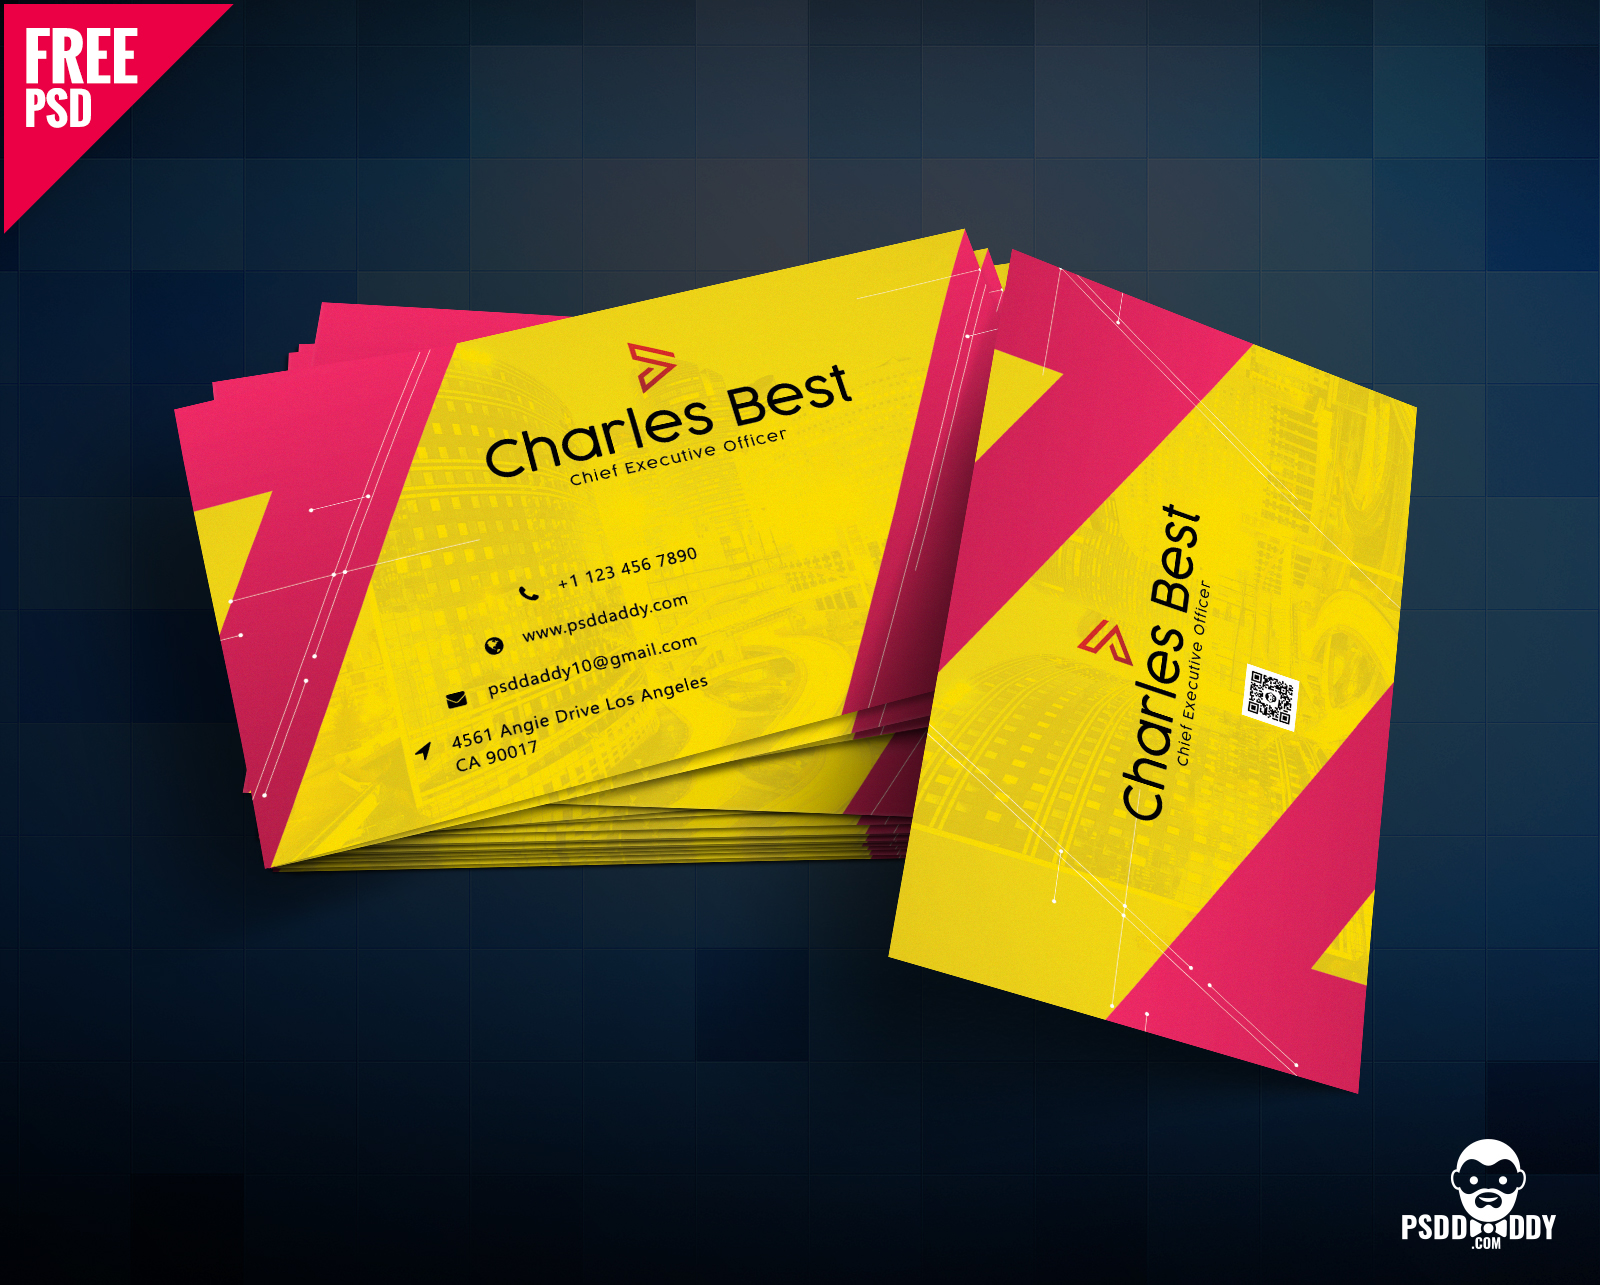 Creative business card template psd free download psddaddy business card design business card design templates business card dimensions business card holder flashek Image collections